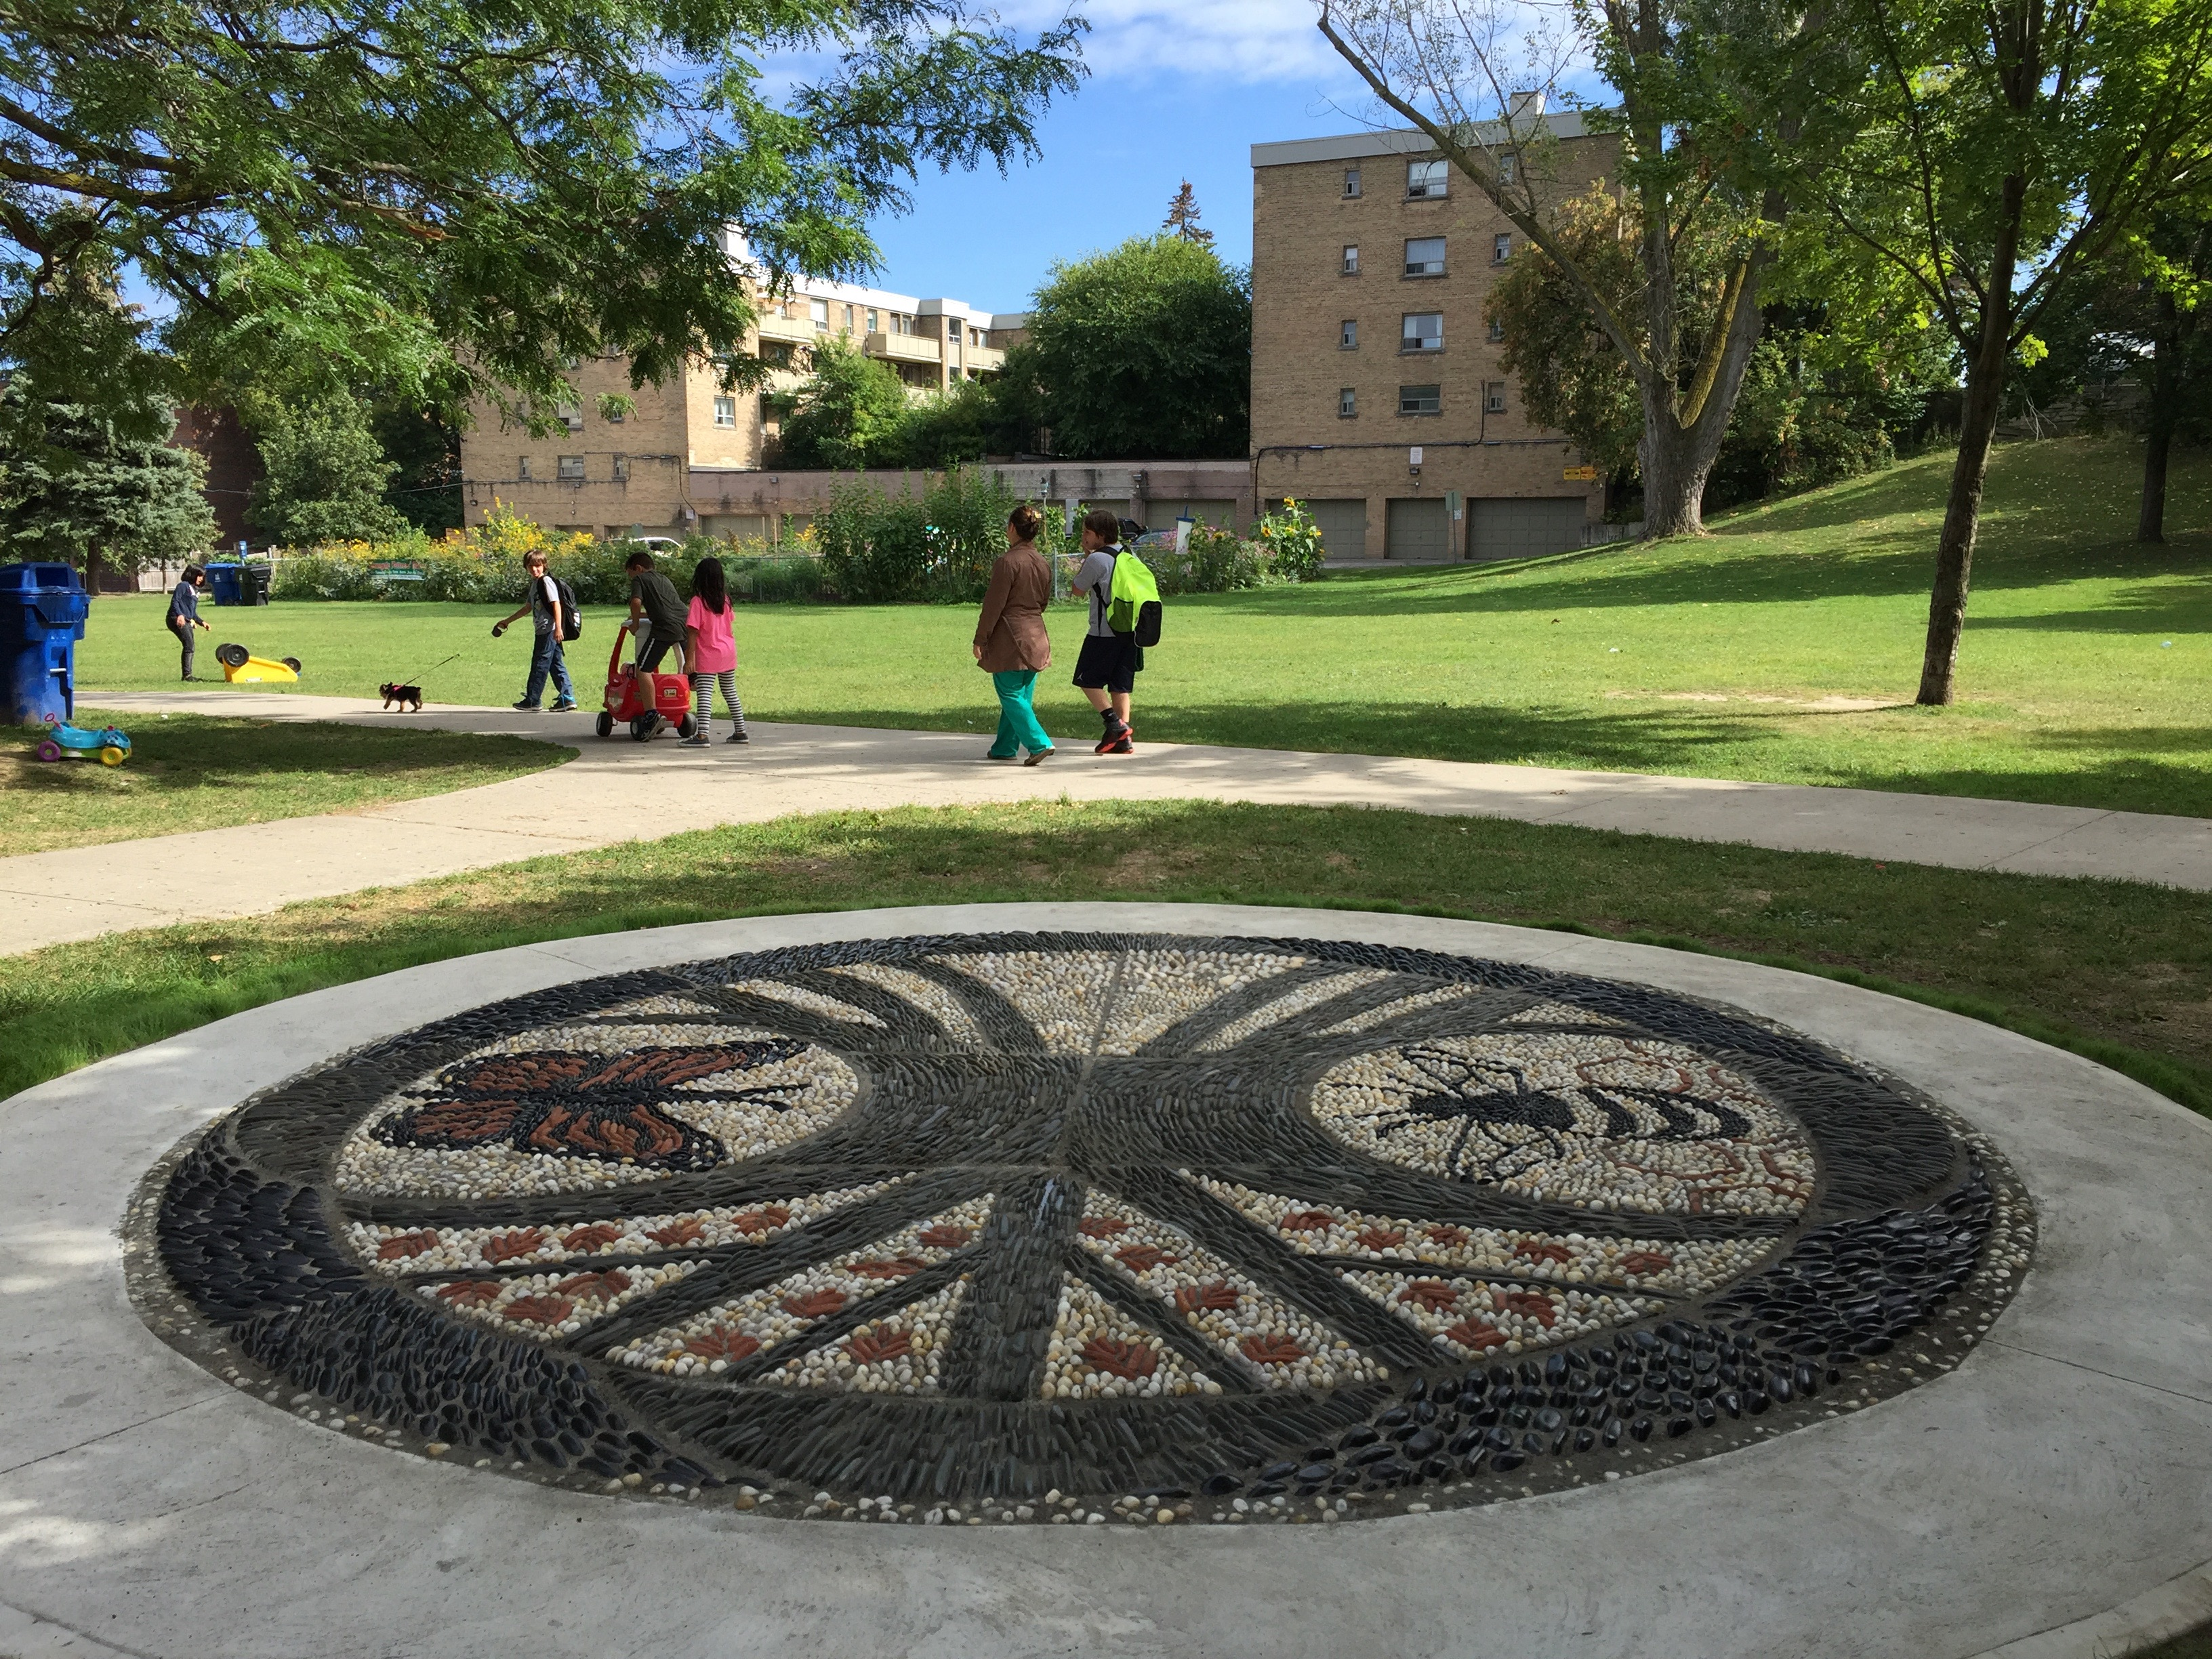 This is an image of a circular pebble mosaic on the ground of a park. In the foreground the image shows a circular pebble mosaic and in the background there is grass and some apartment buildings.